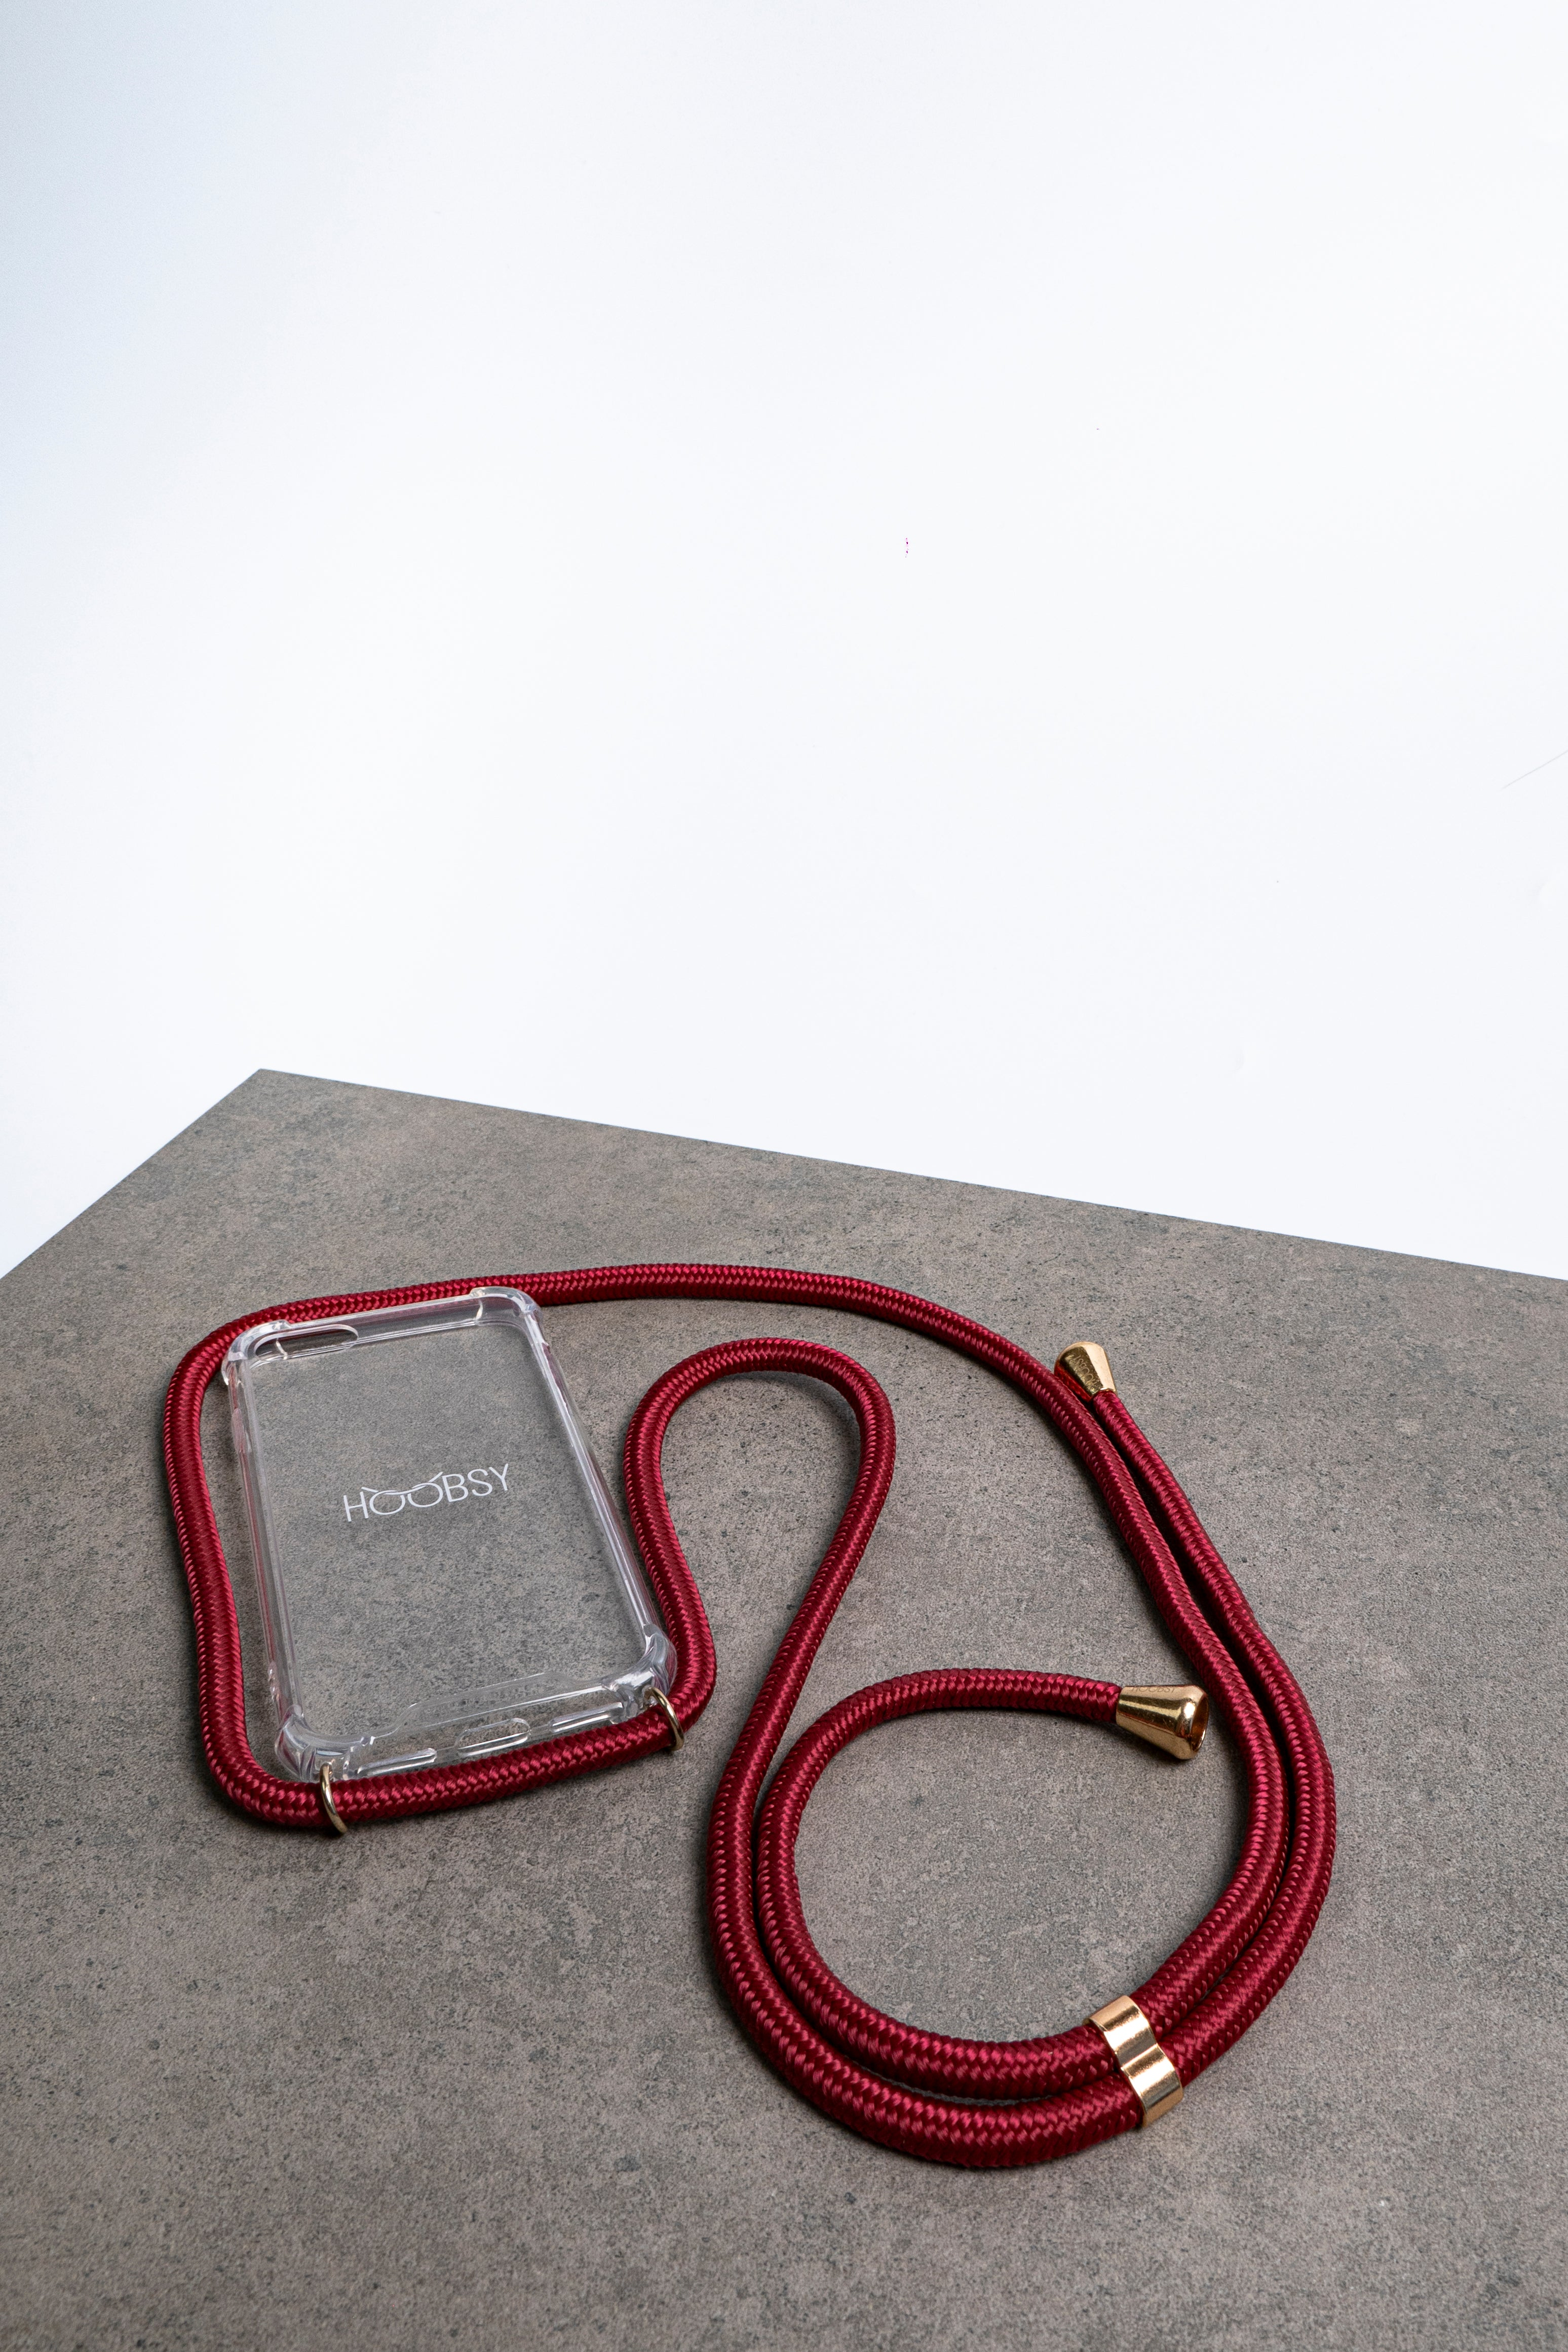 PHONE NECKLACE - BURGUNDY